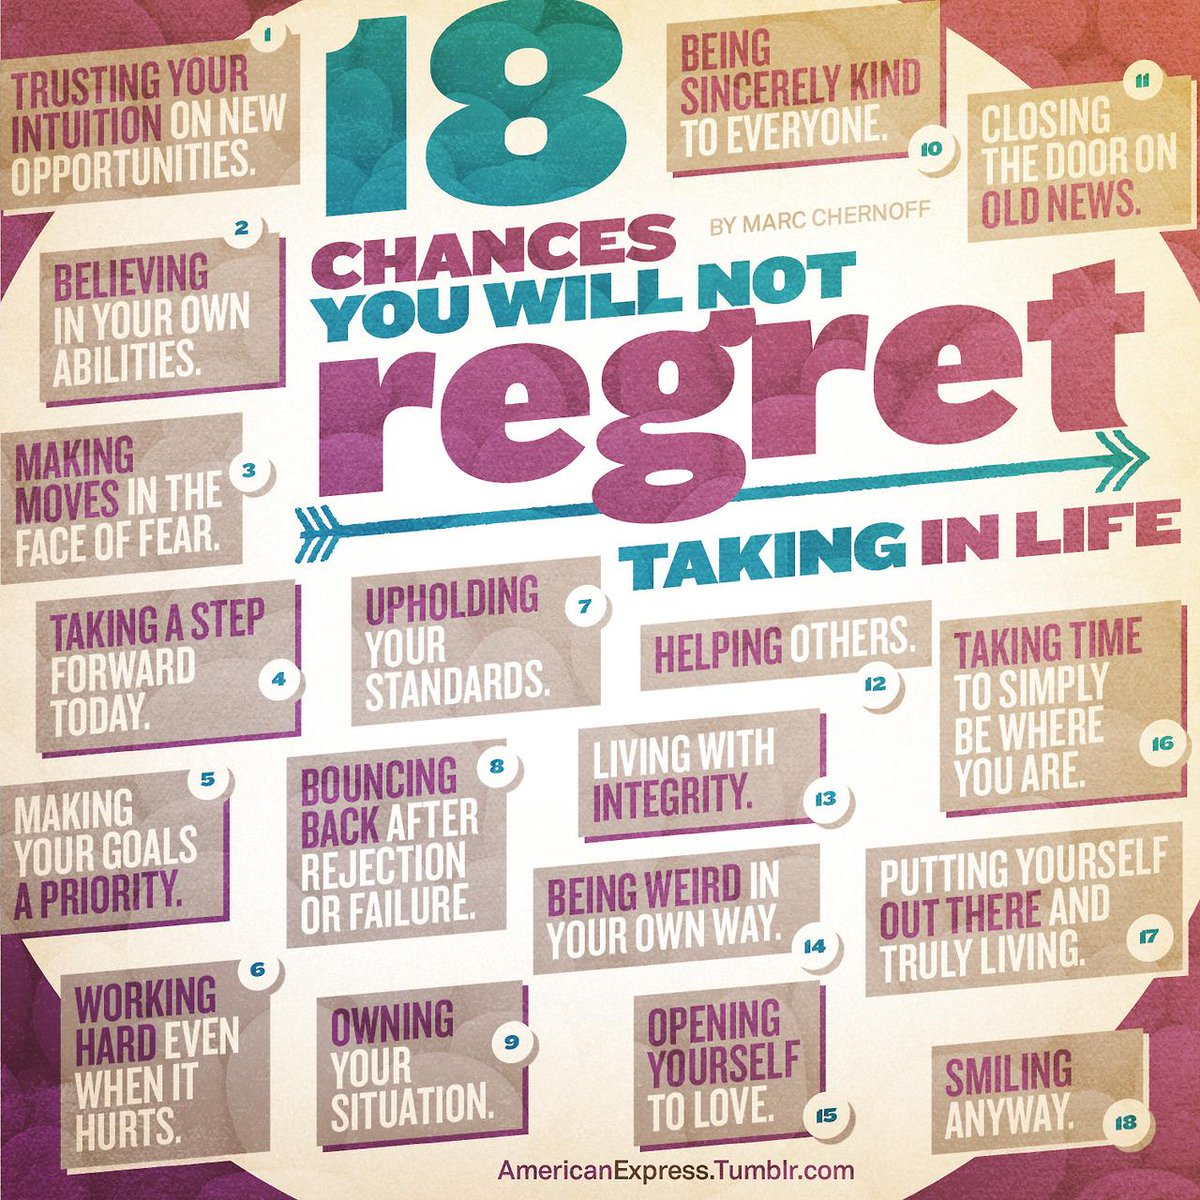 18 Chances You Will Not Regret Taking in Life: http://t.co/HbOP1lMi9i http://t.co/mNcOvCEpAp